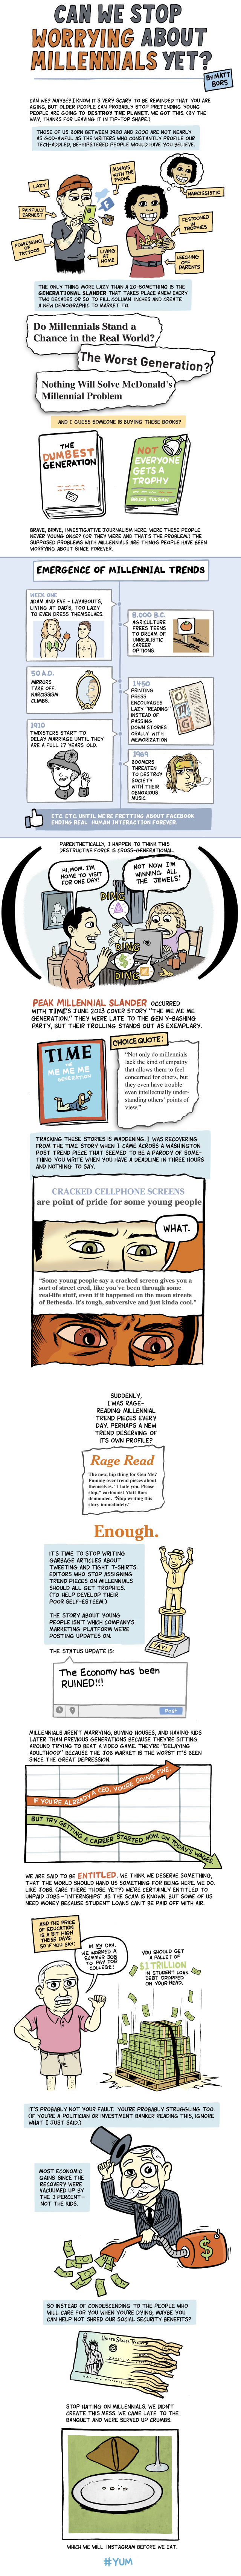 http://www.cnn.com/2013/07/09/opinion/bors-millenial-comic-strip/index.html